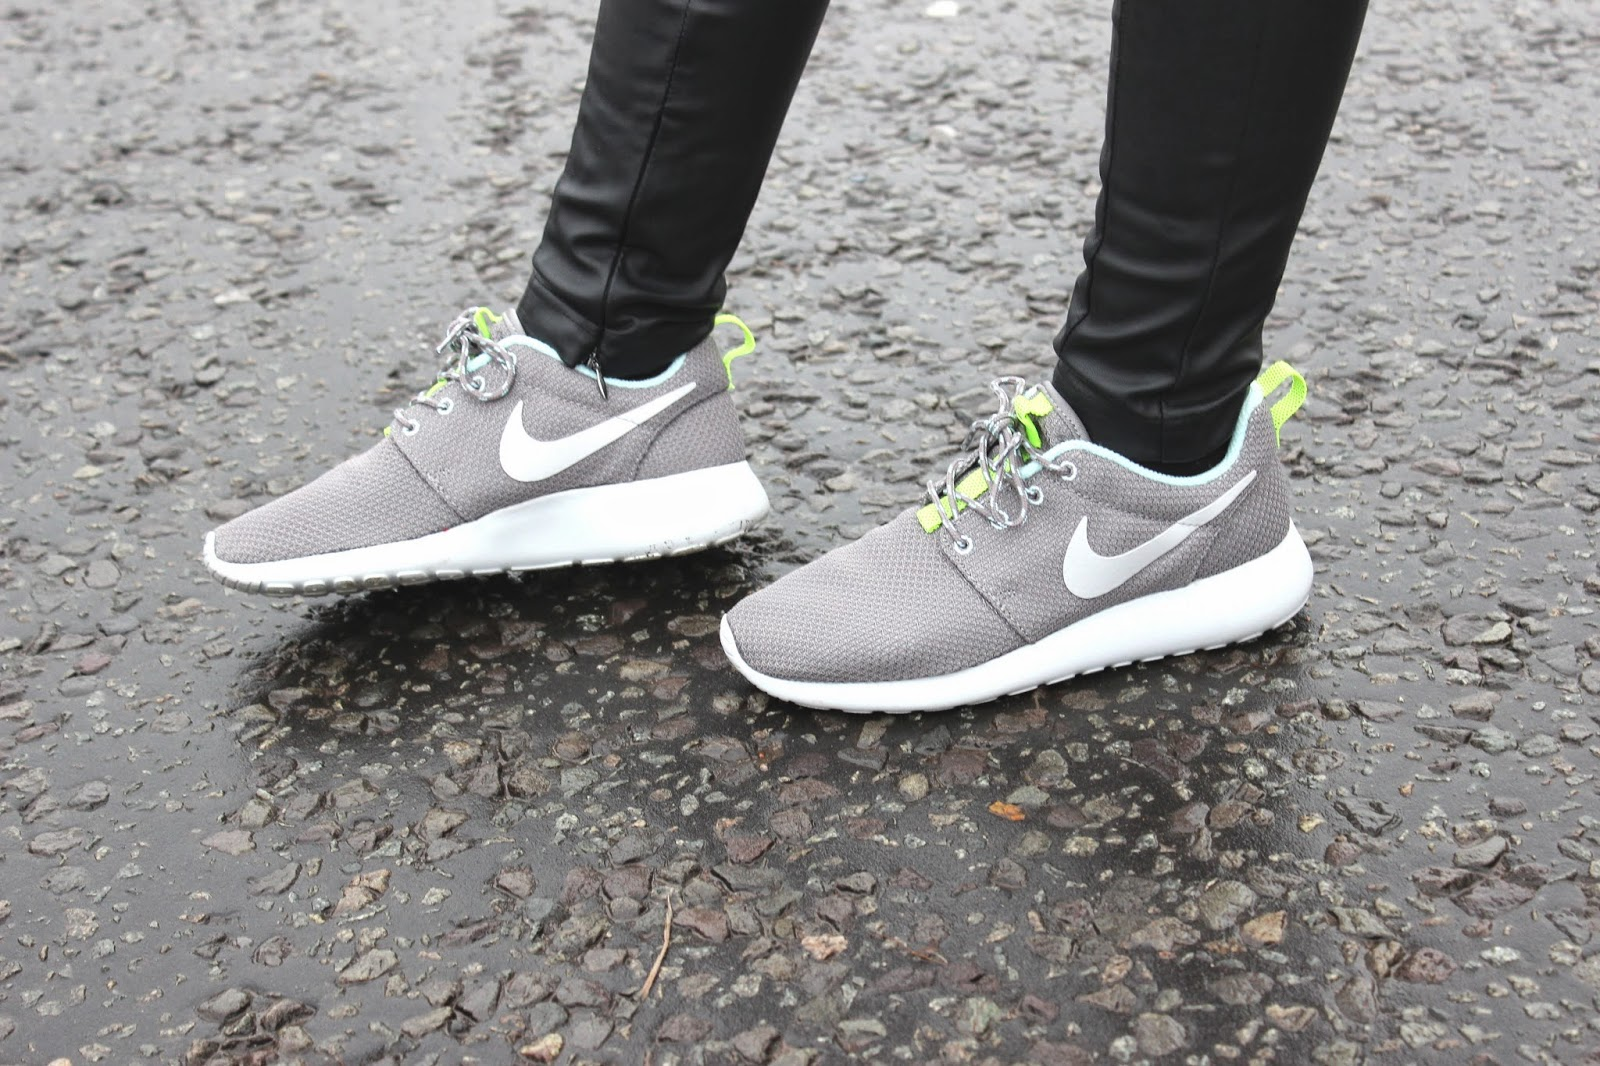 FASHION_BLOGGER_WEARING_GREY_NIKE_ROSHE_RUN_TRAINERS_FROM_USC